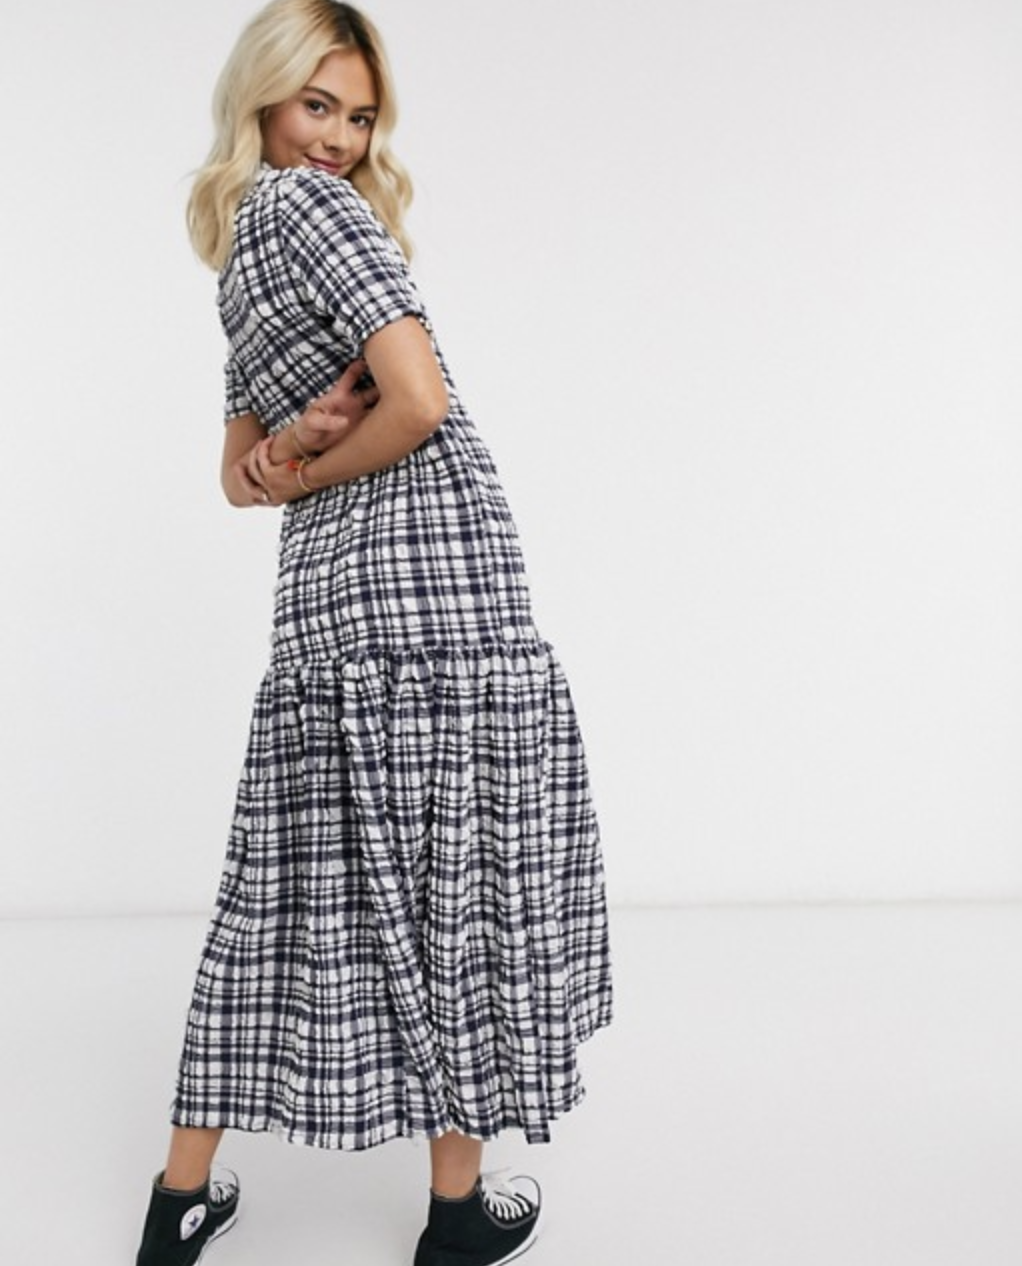 Model in a black and white checkered tiered maxi dress with short sleeves